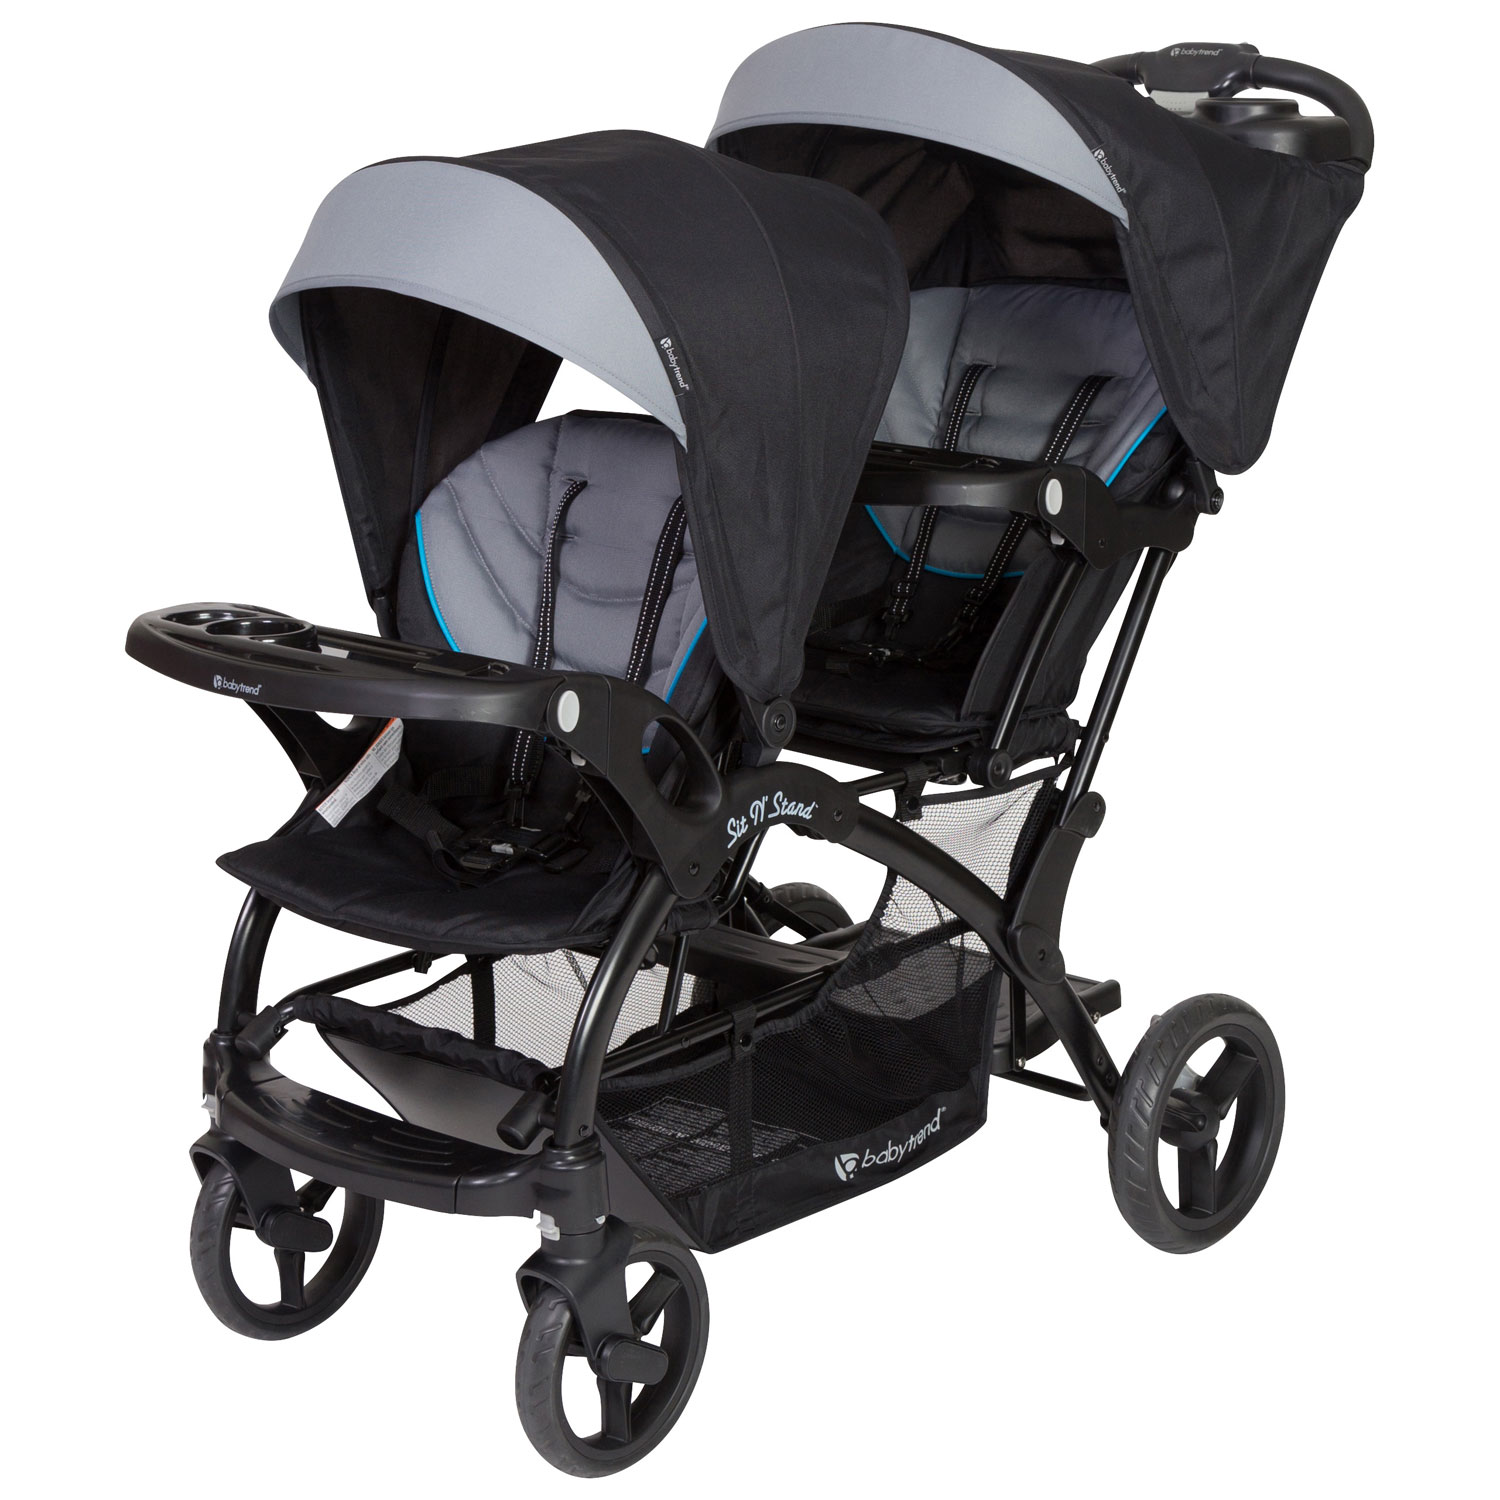 stroller buying guide - baby trend sit n stand double stroller